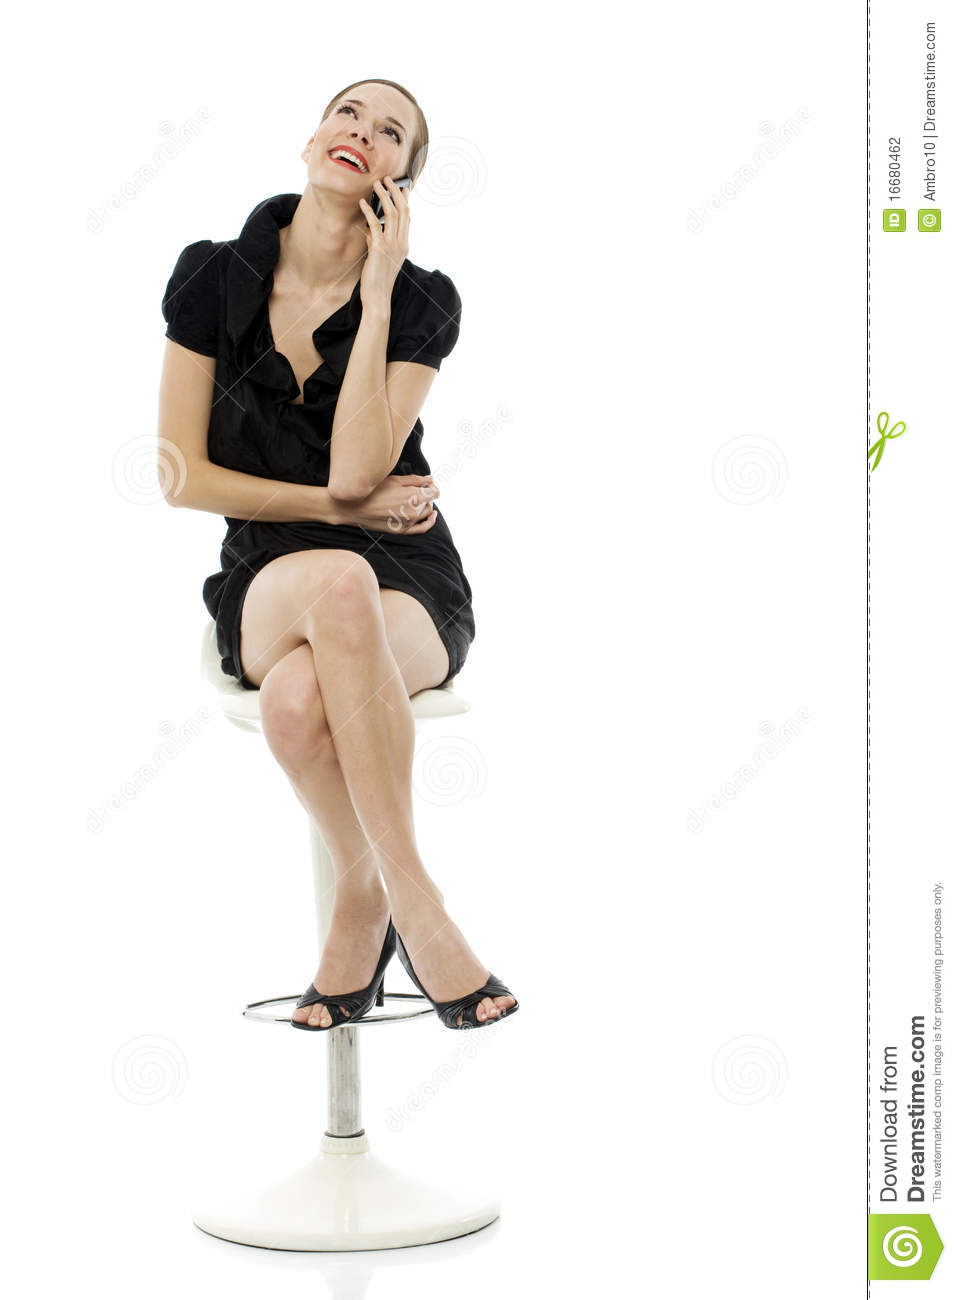 Smart Woman Sitting On A Stool Holding A Cellphone Stock Photography Image 16680462